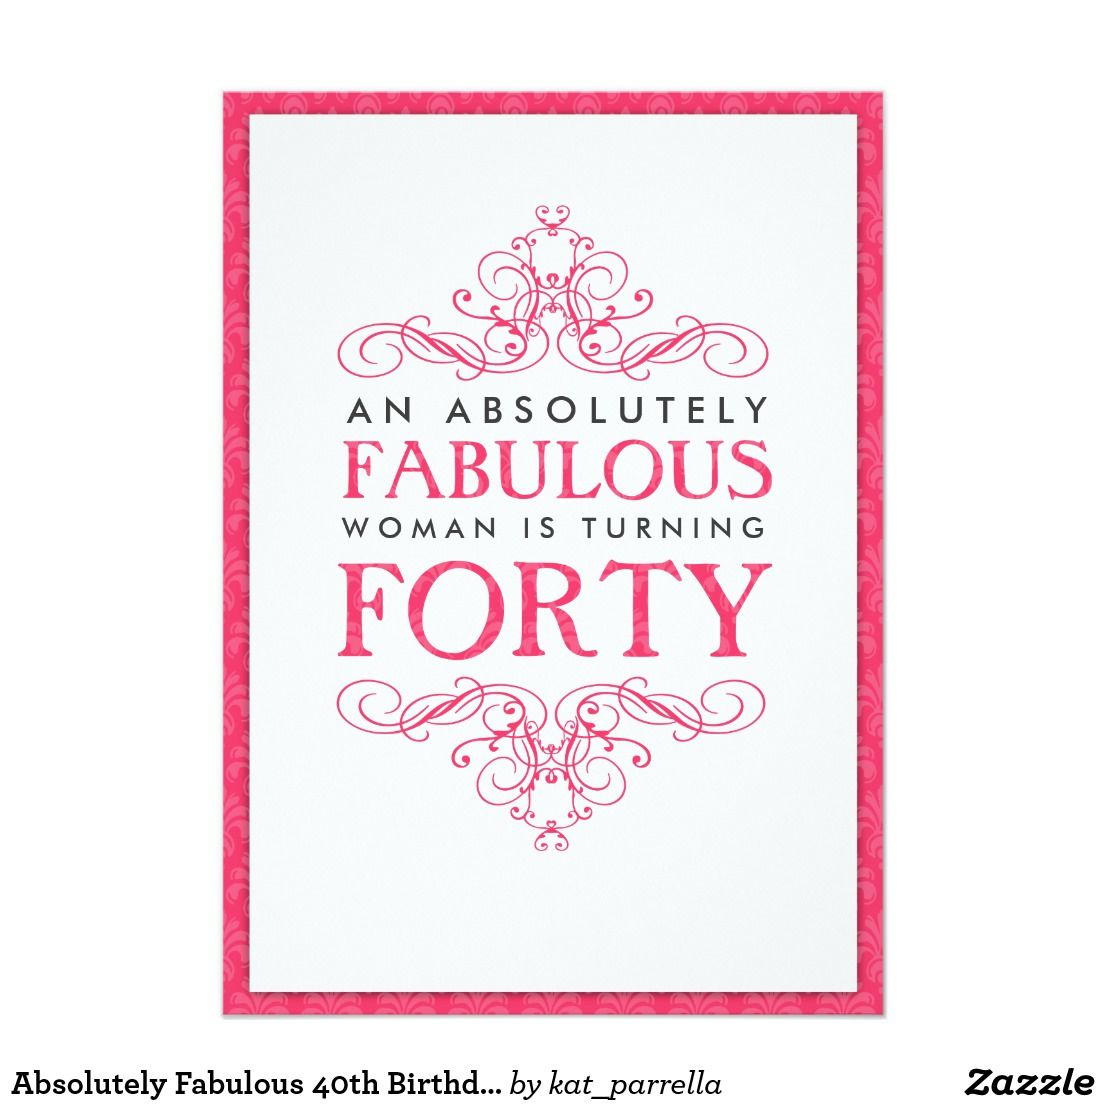 Absolutely Fabulous 40th Birthday Party Invitation | Personalized ...